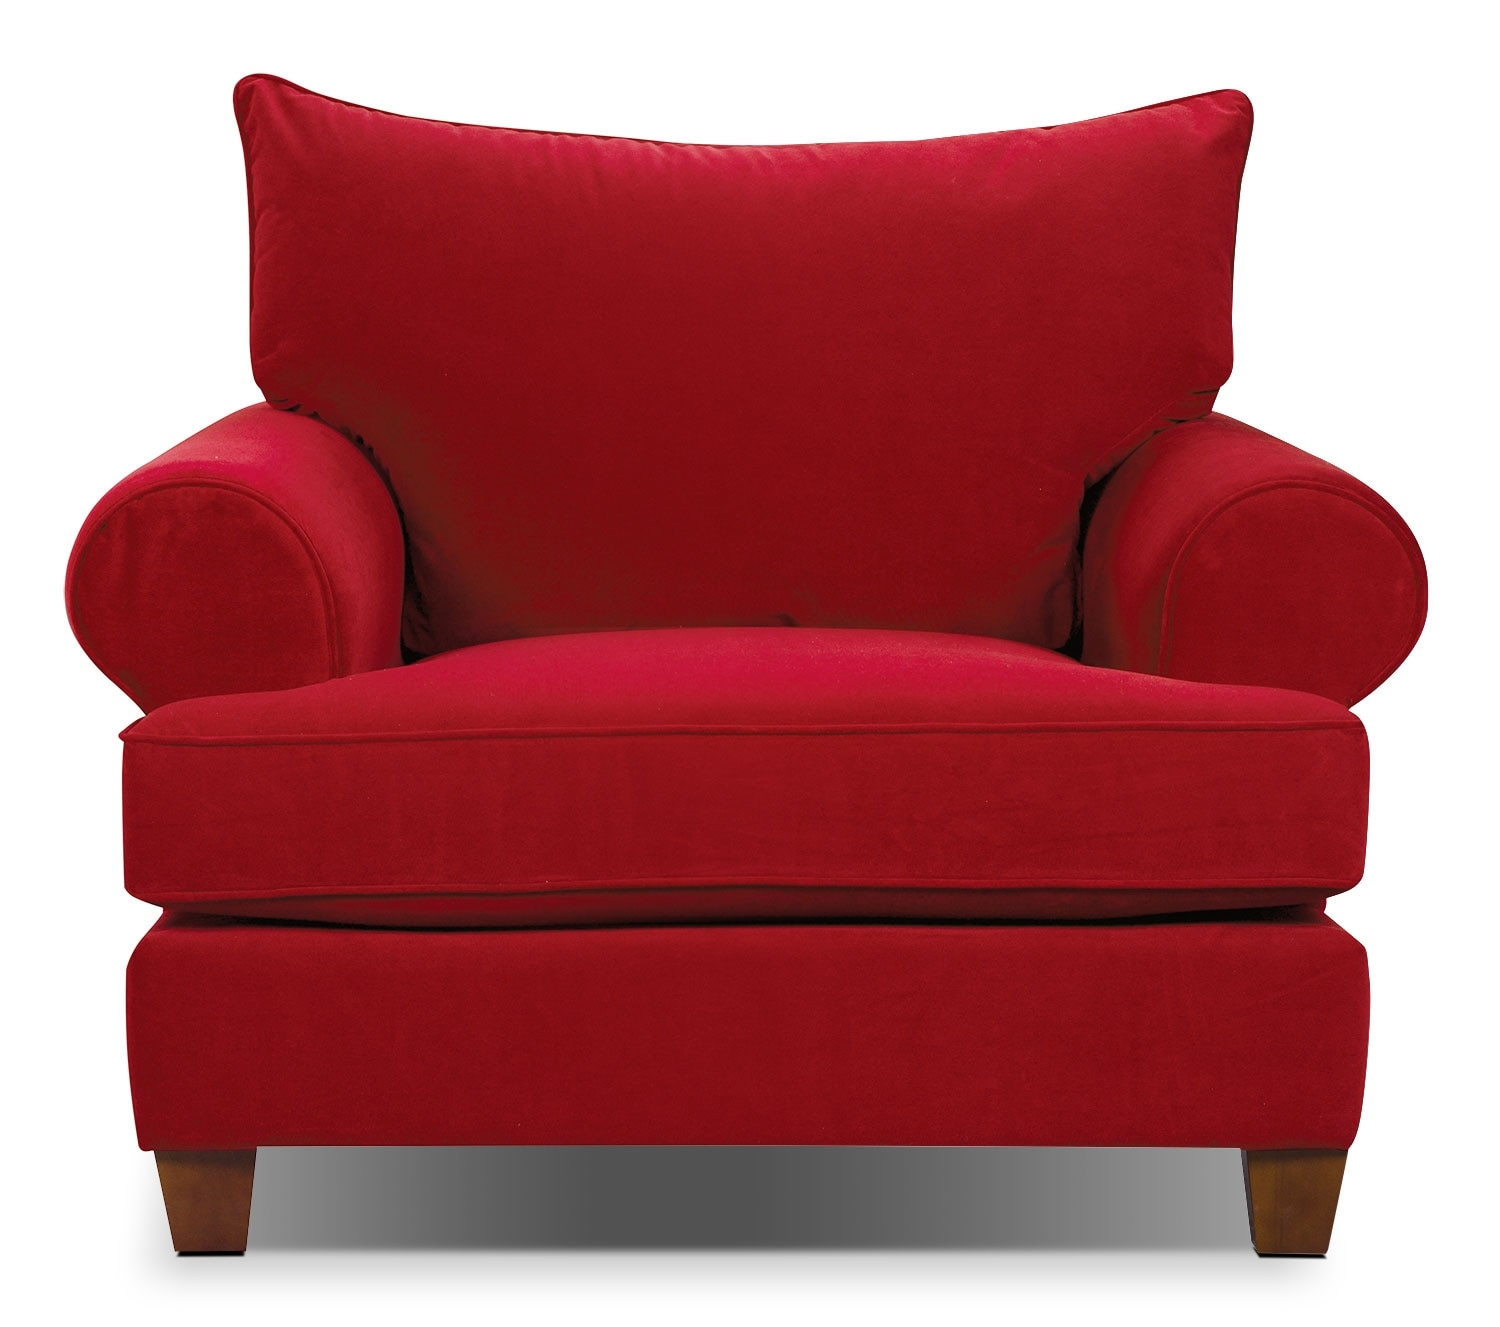 Paige Microsuede Chair - Red